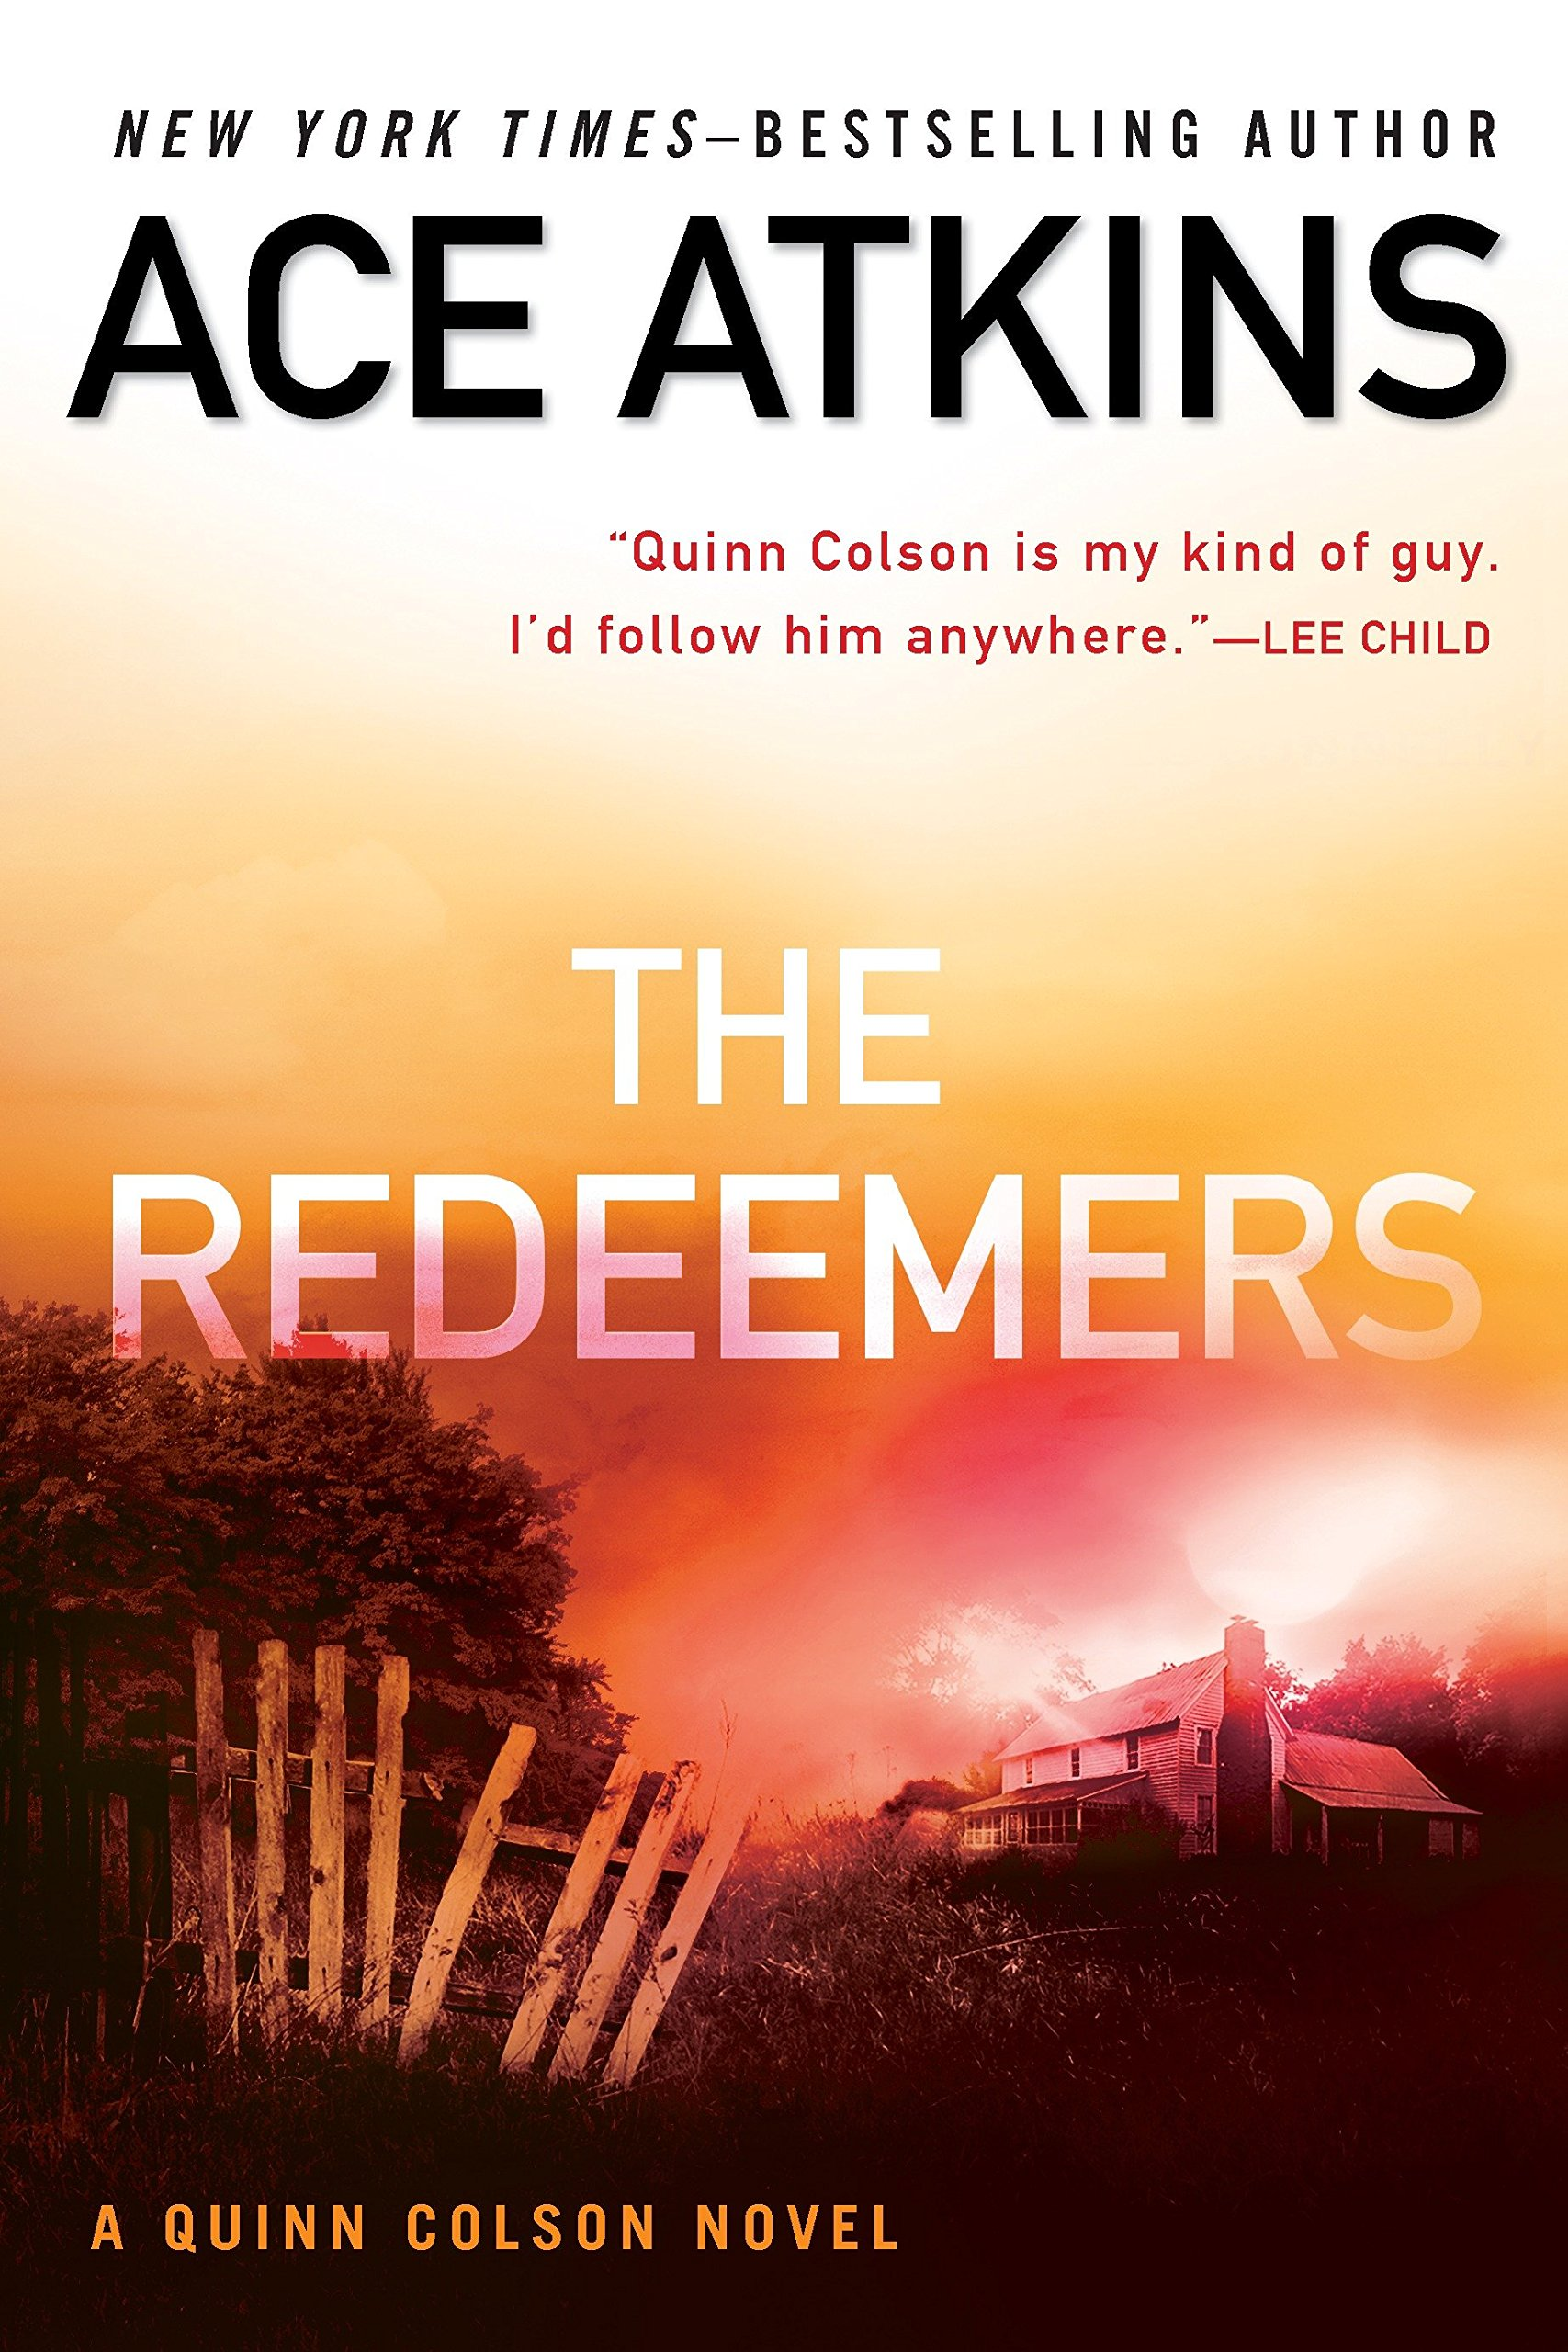 Amazon.com: The Redeemers (A Quinn Colson Novel) (9780425282830): Ace Atkins:  Books